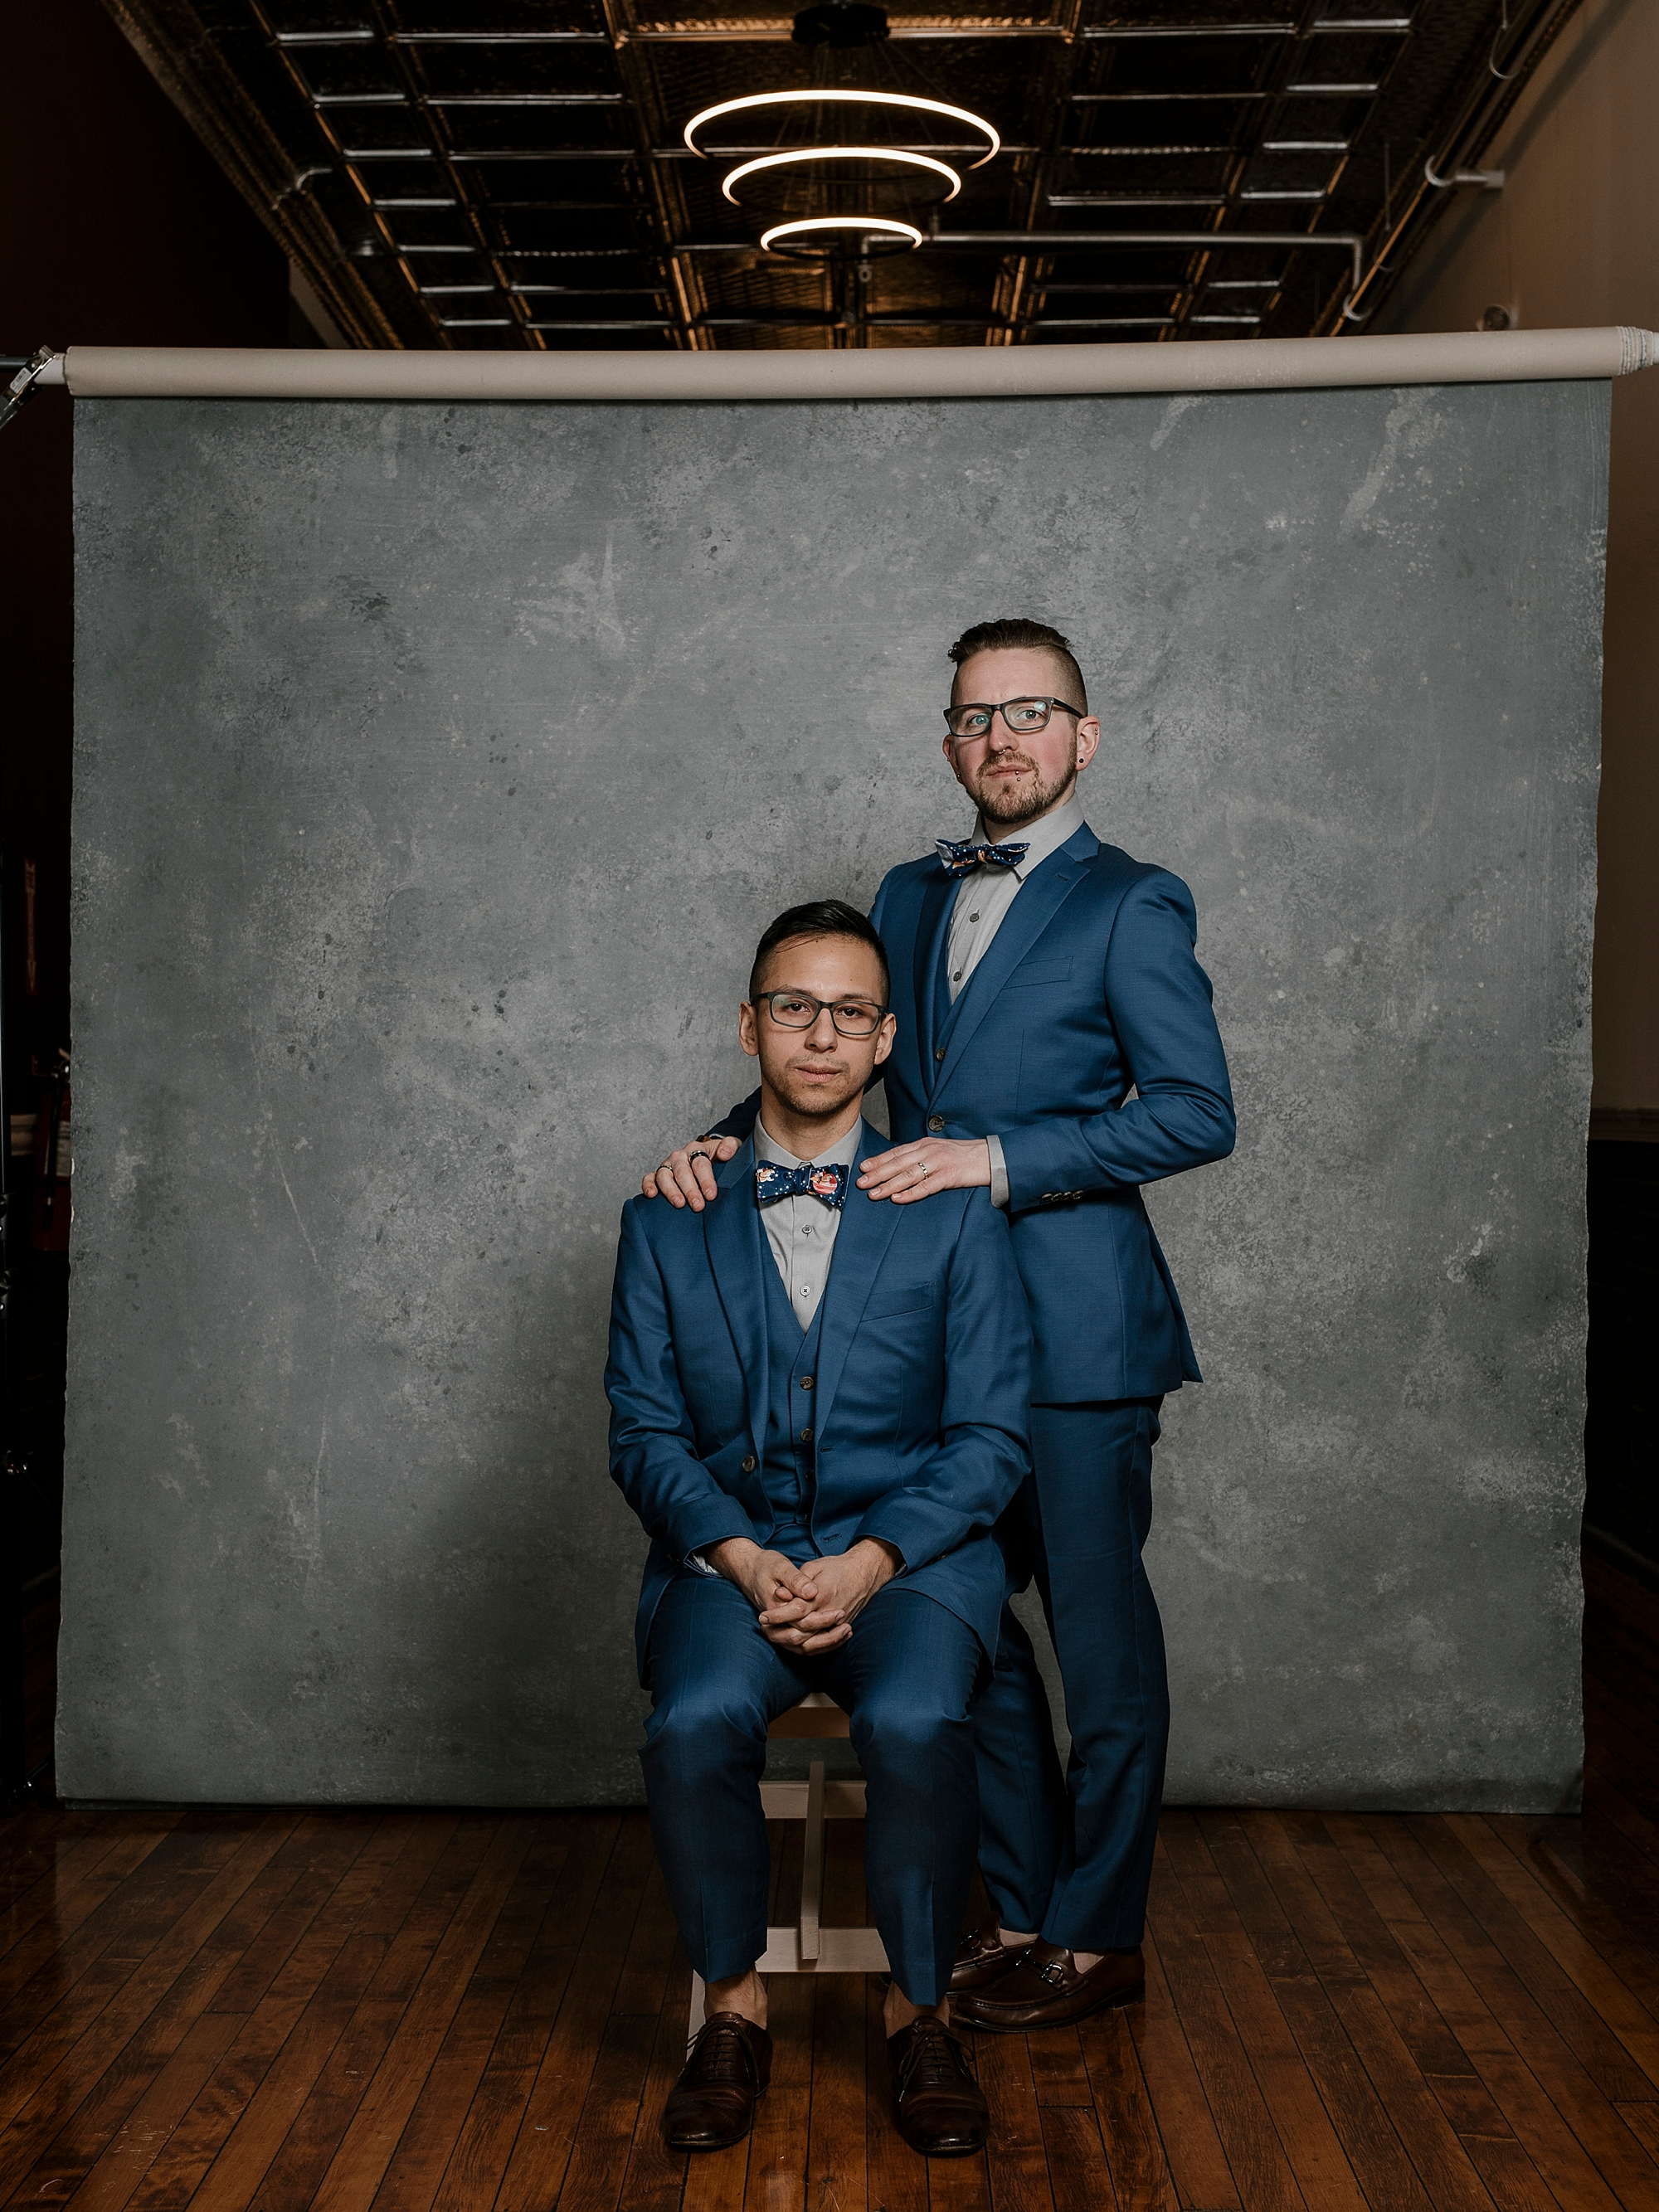 Joe_Mac_Creative_Philadelphia_Philly_LGBT_Gay_Engagement_Wedding_Photography__0092.jpg